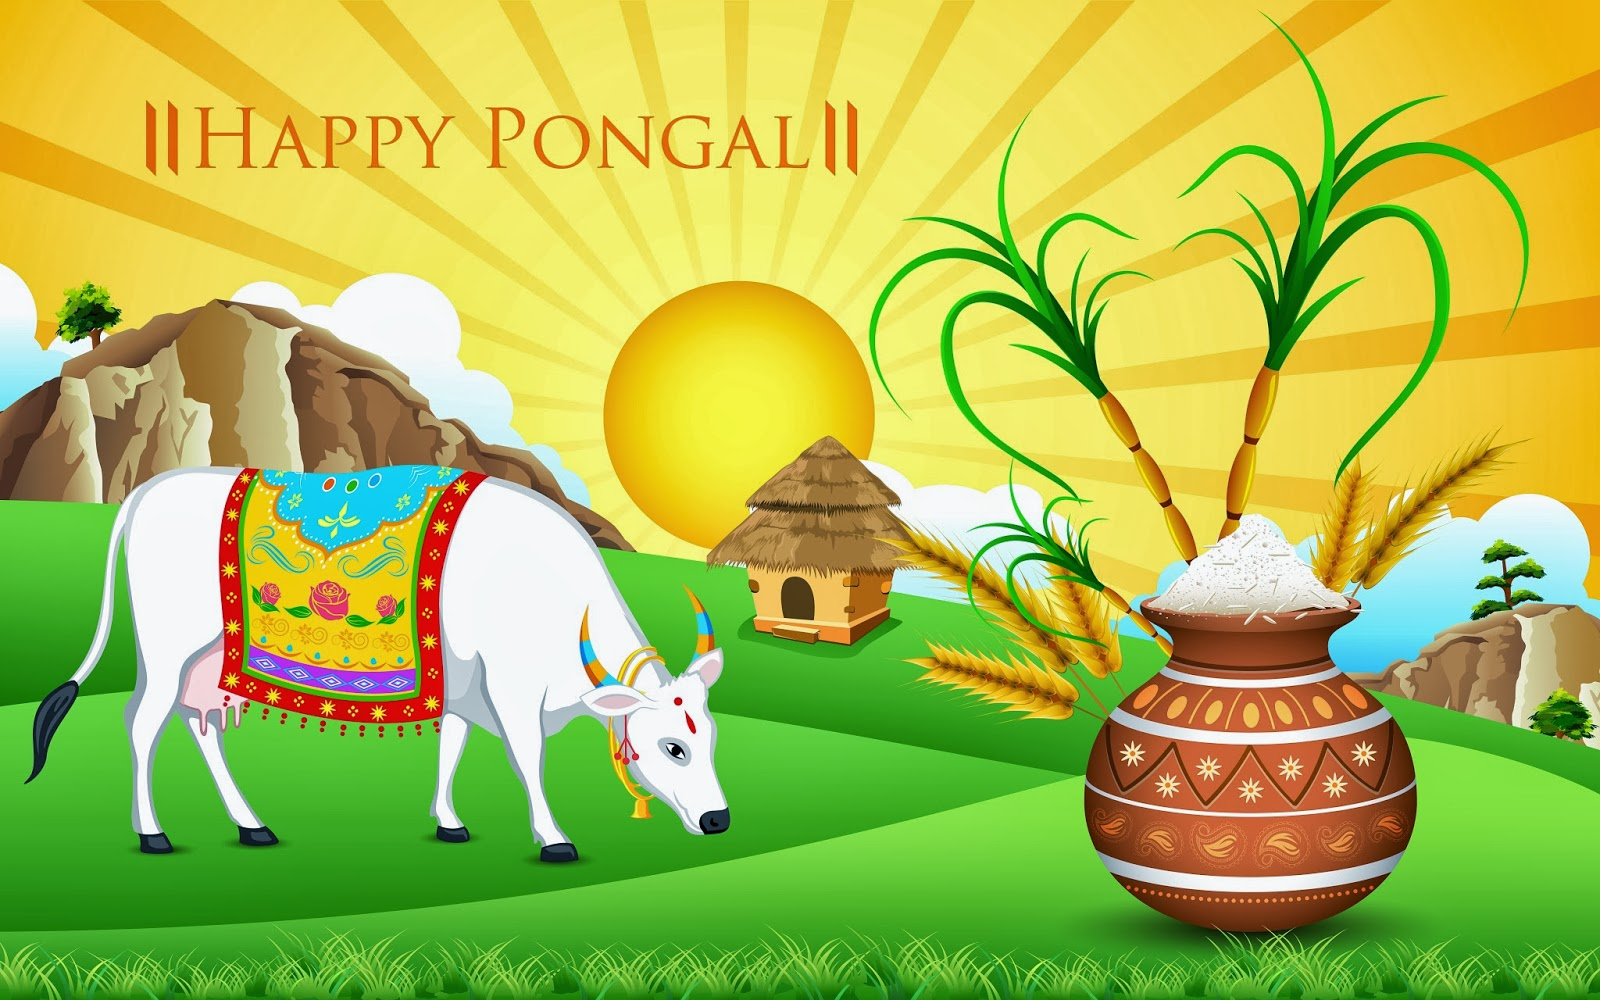 happy-sankranti-latest-village-wallpapers-naveengfx.com